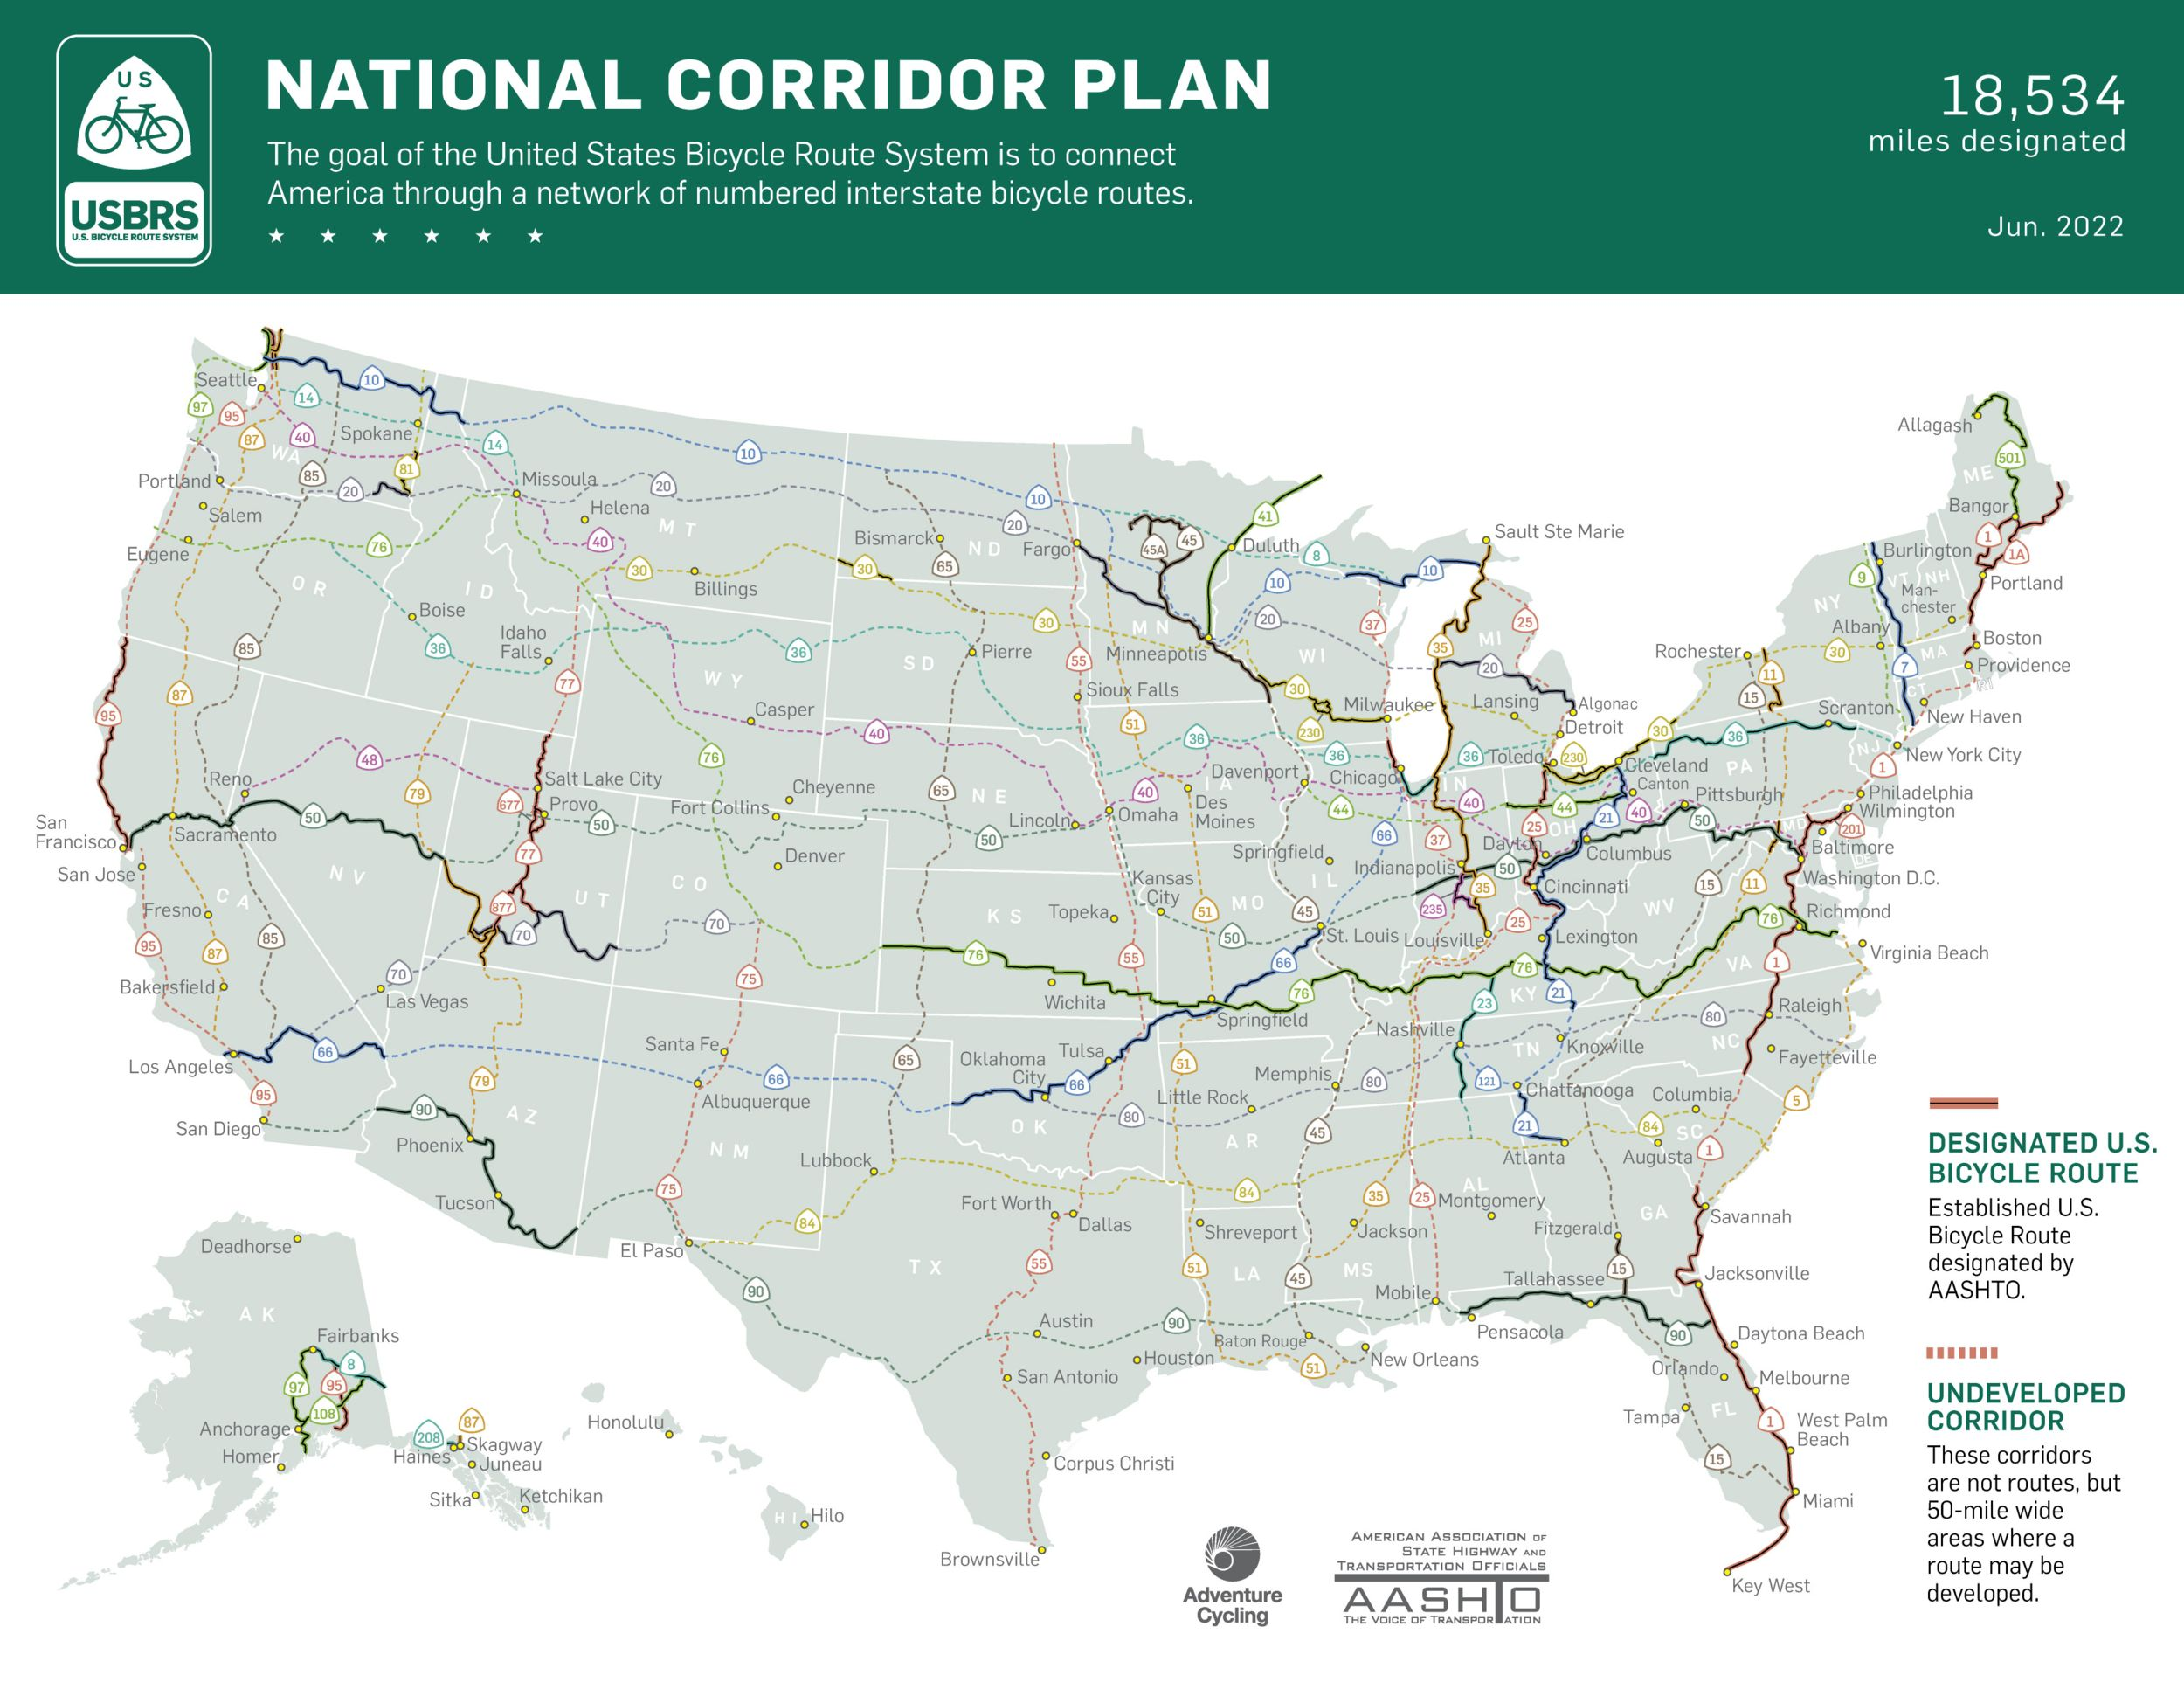 national corridor plan | u.s. bicycle route system | adventure